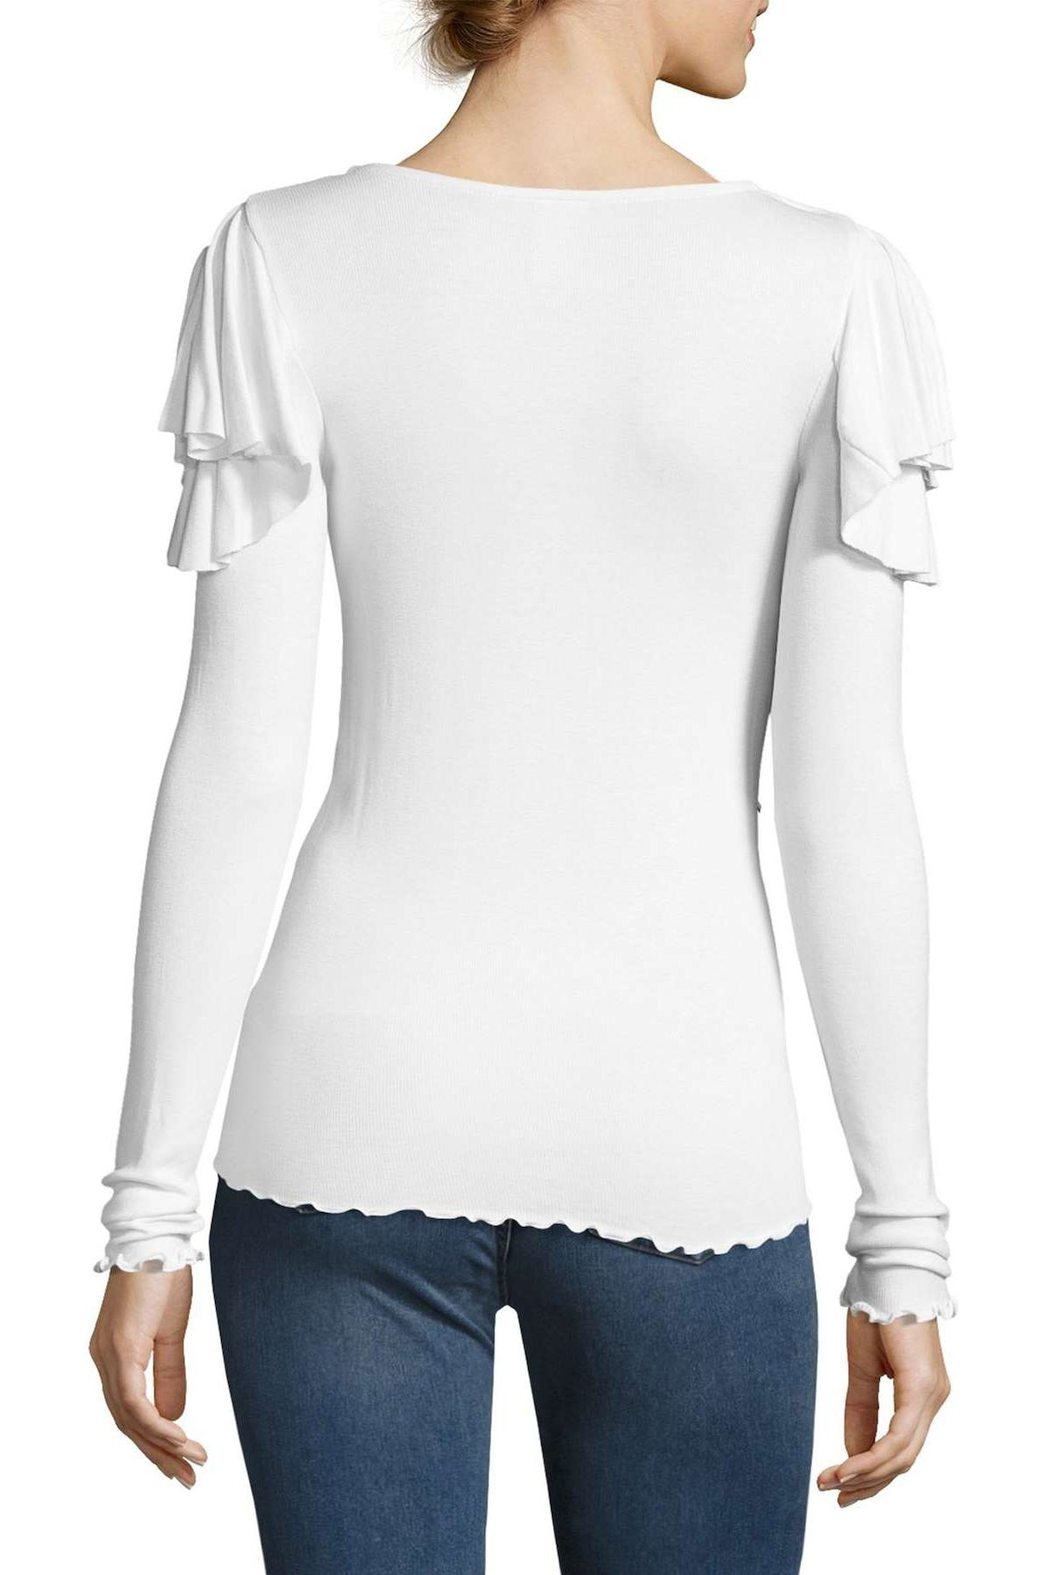 Free People On Rewind Top - Front Full Image